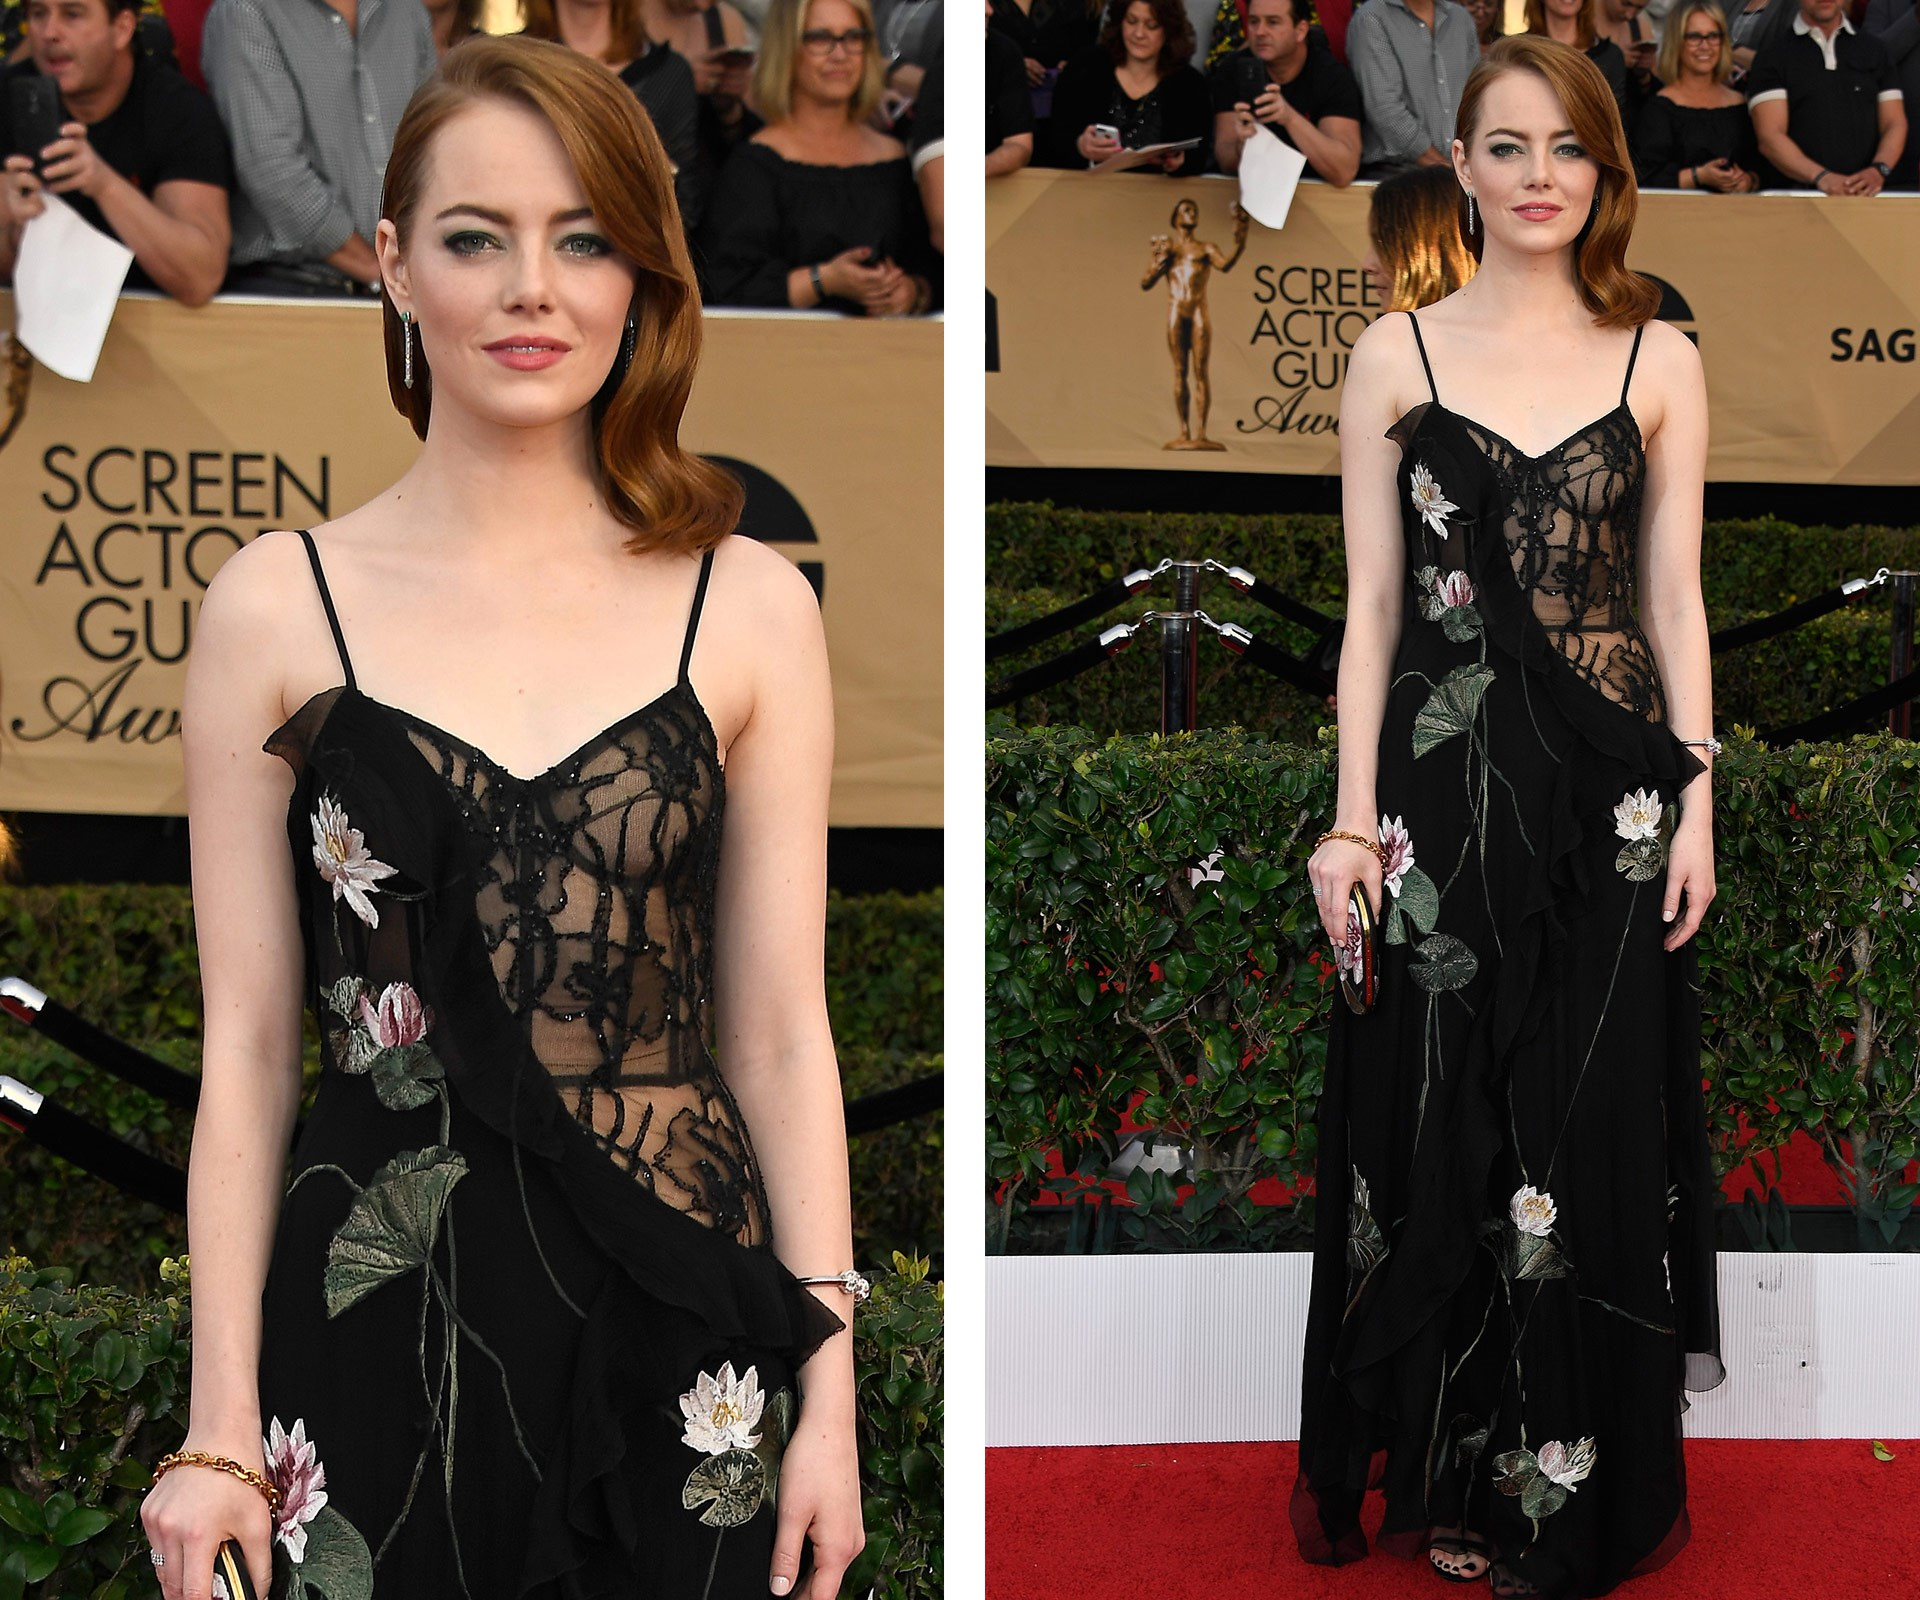 Emma Stone chose a classic black dress for her SAG red carpet appearance.